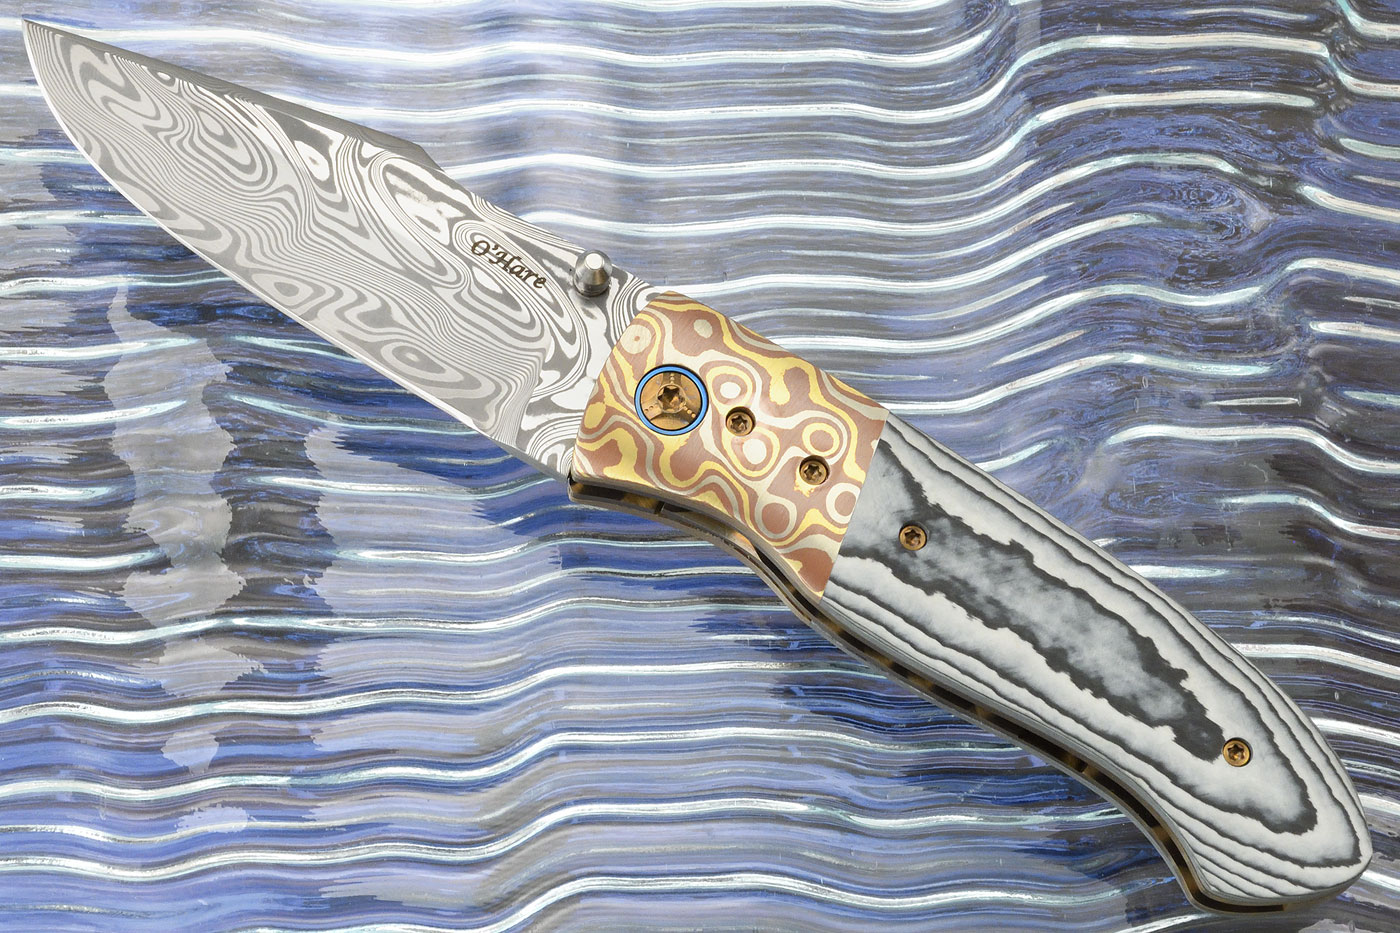 F2K with TPT Carboquartz, Mokume, and Damasteel